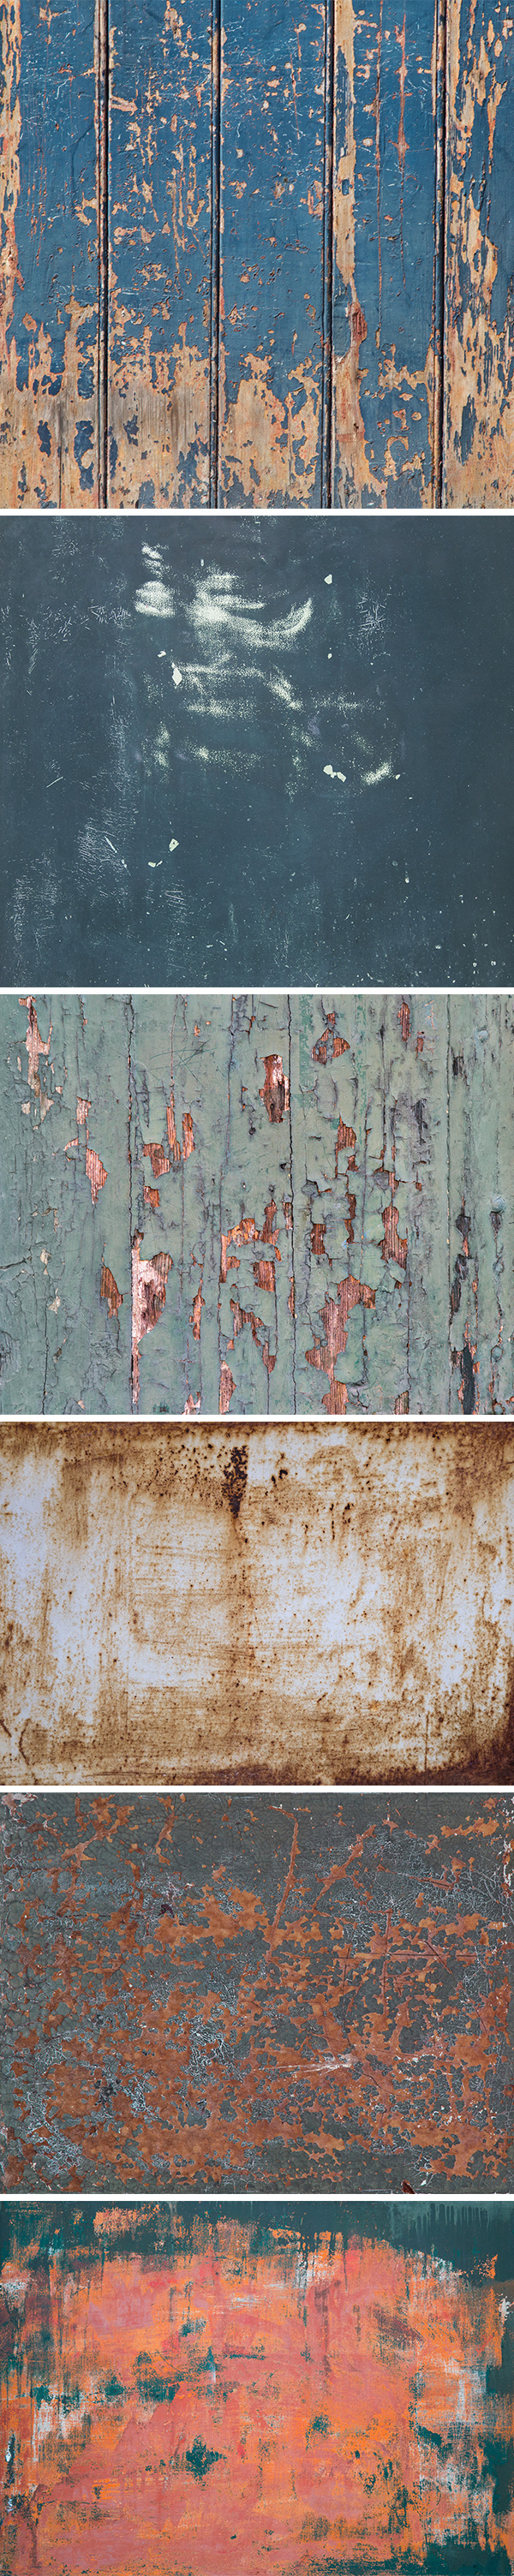 6-Weathered-Textures-Vol2-600